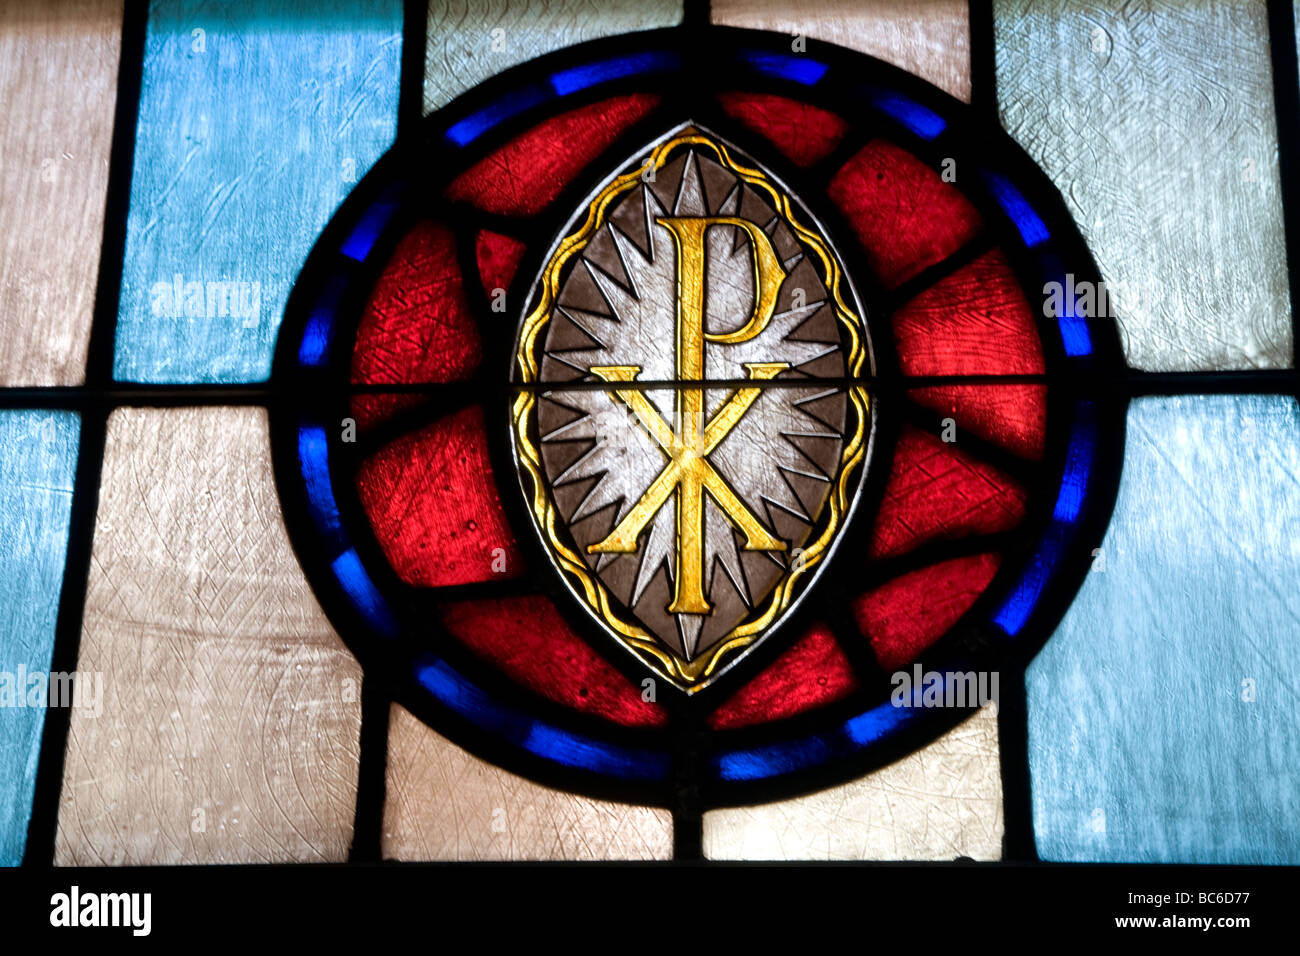 Stained Glass Window Of Christogram Chi Rho Symbol Of Christianity